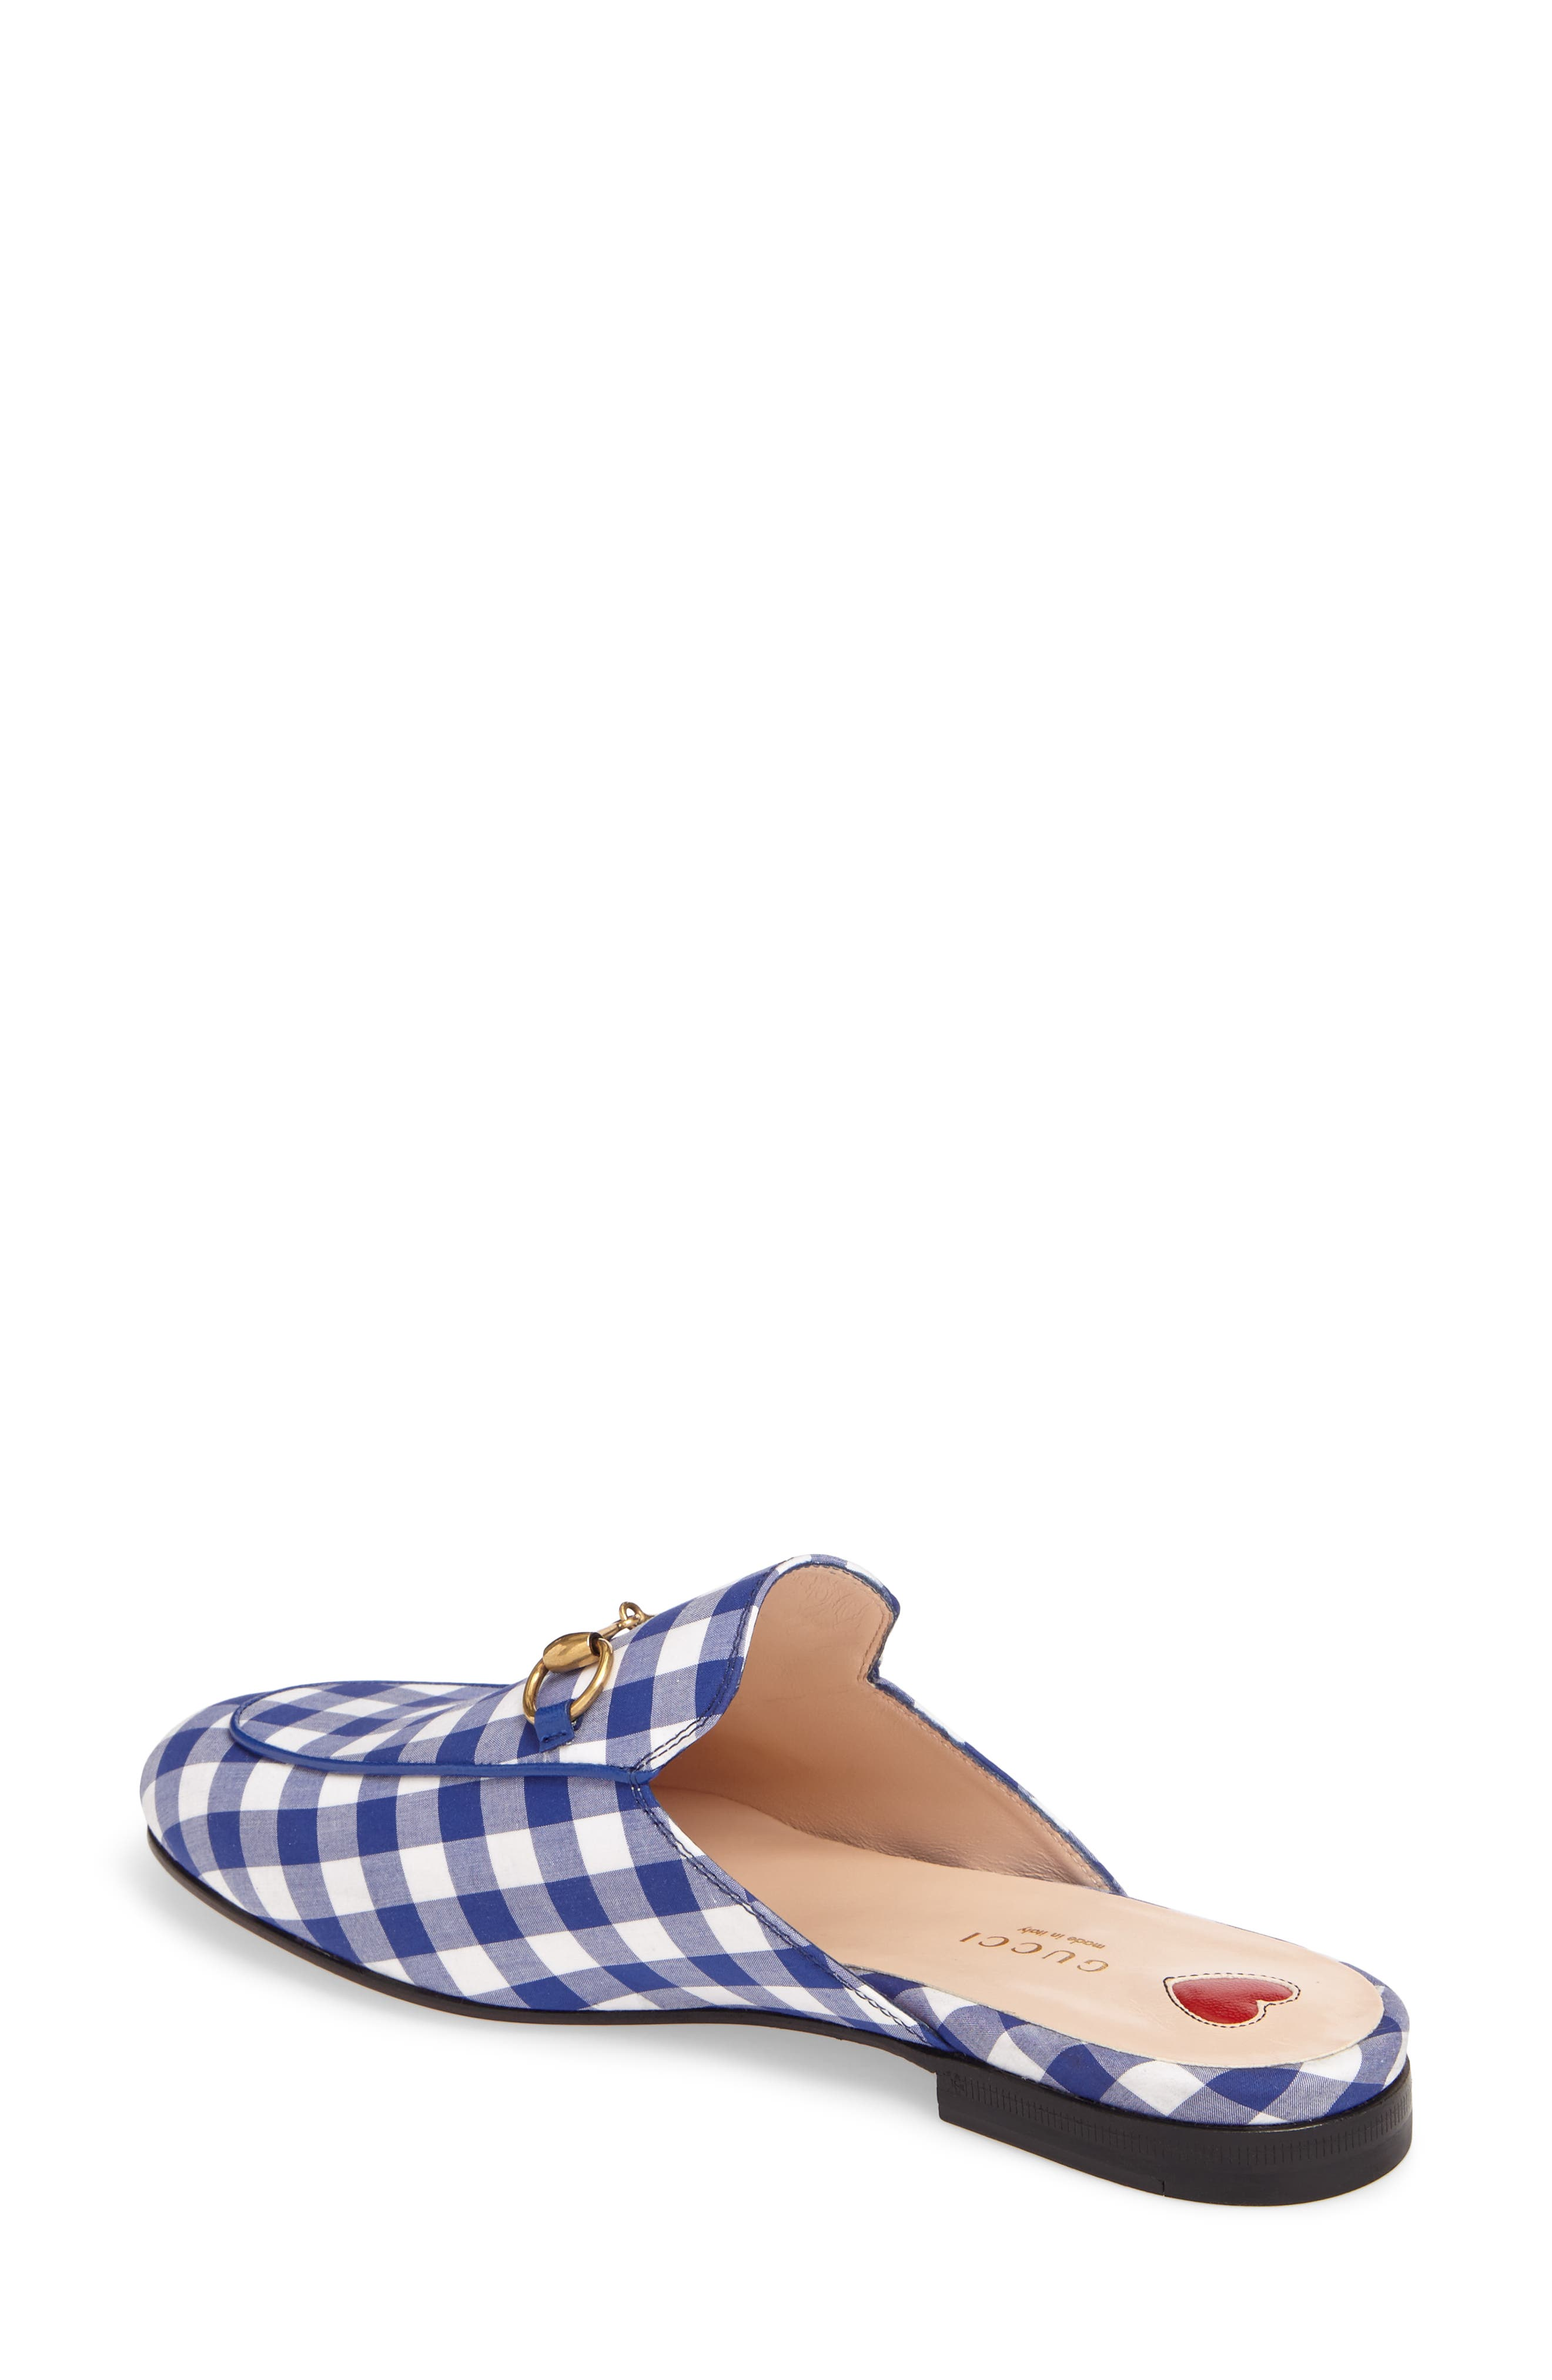 Princetown Gingham Loafer Mule,                             Alternate thumbnail 2, color,                             White/ Electric Blue